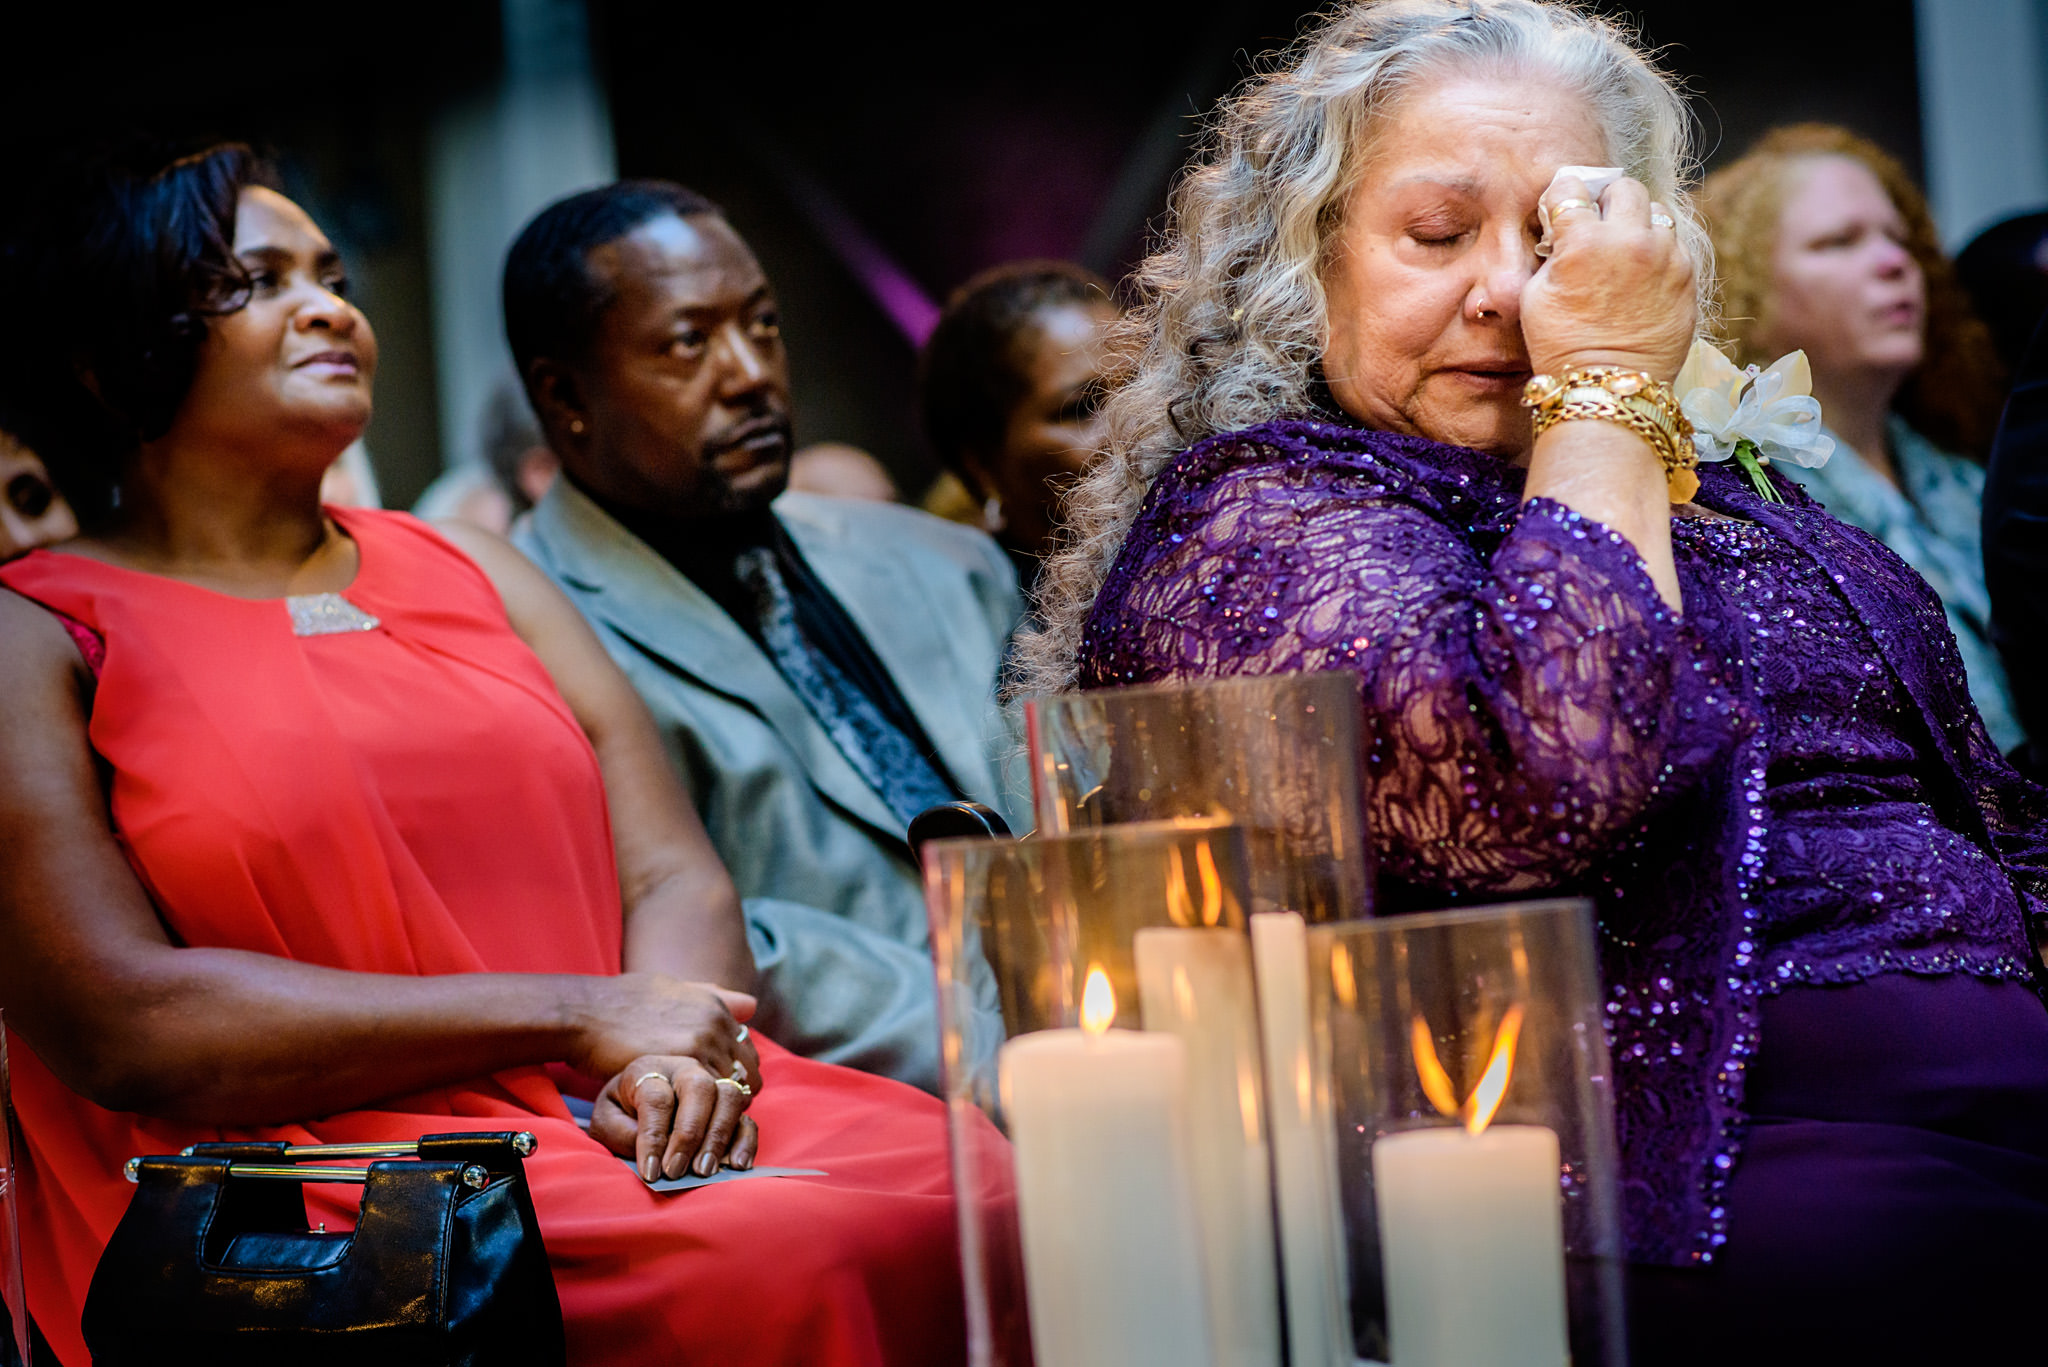 A wedding guest displays emotion during the wedding ceremony